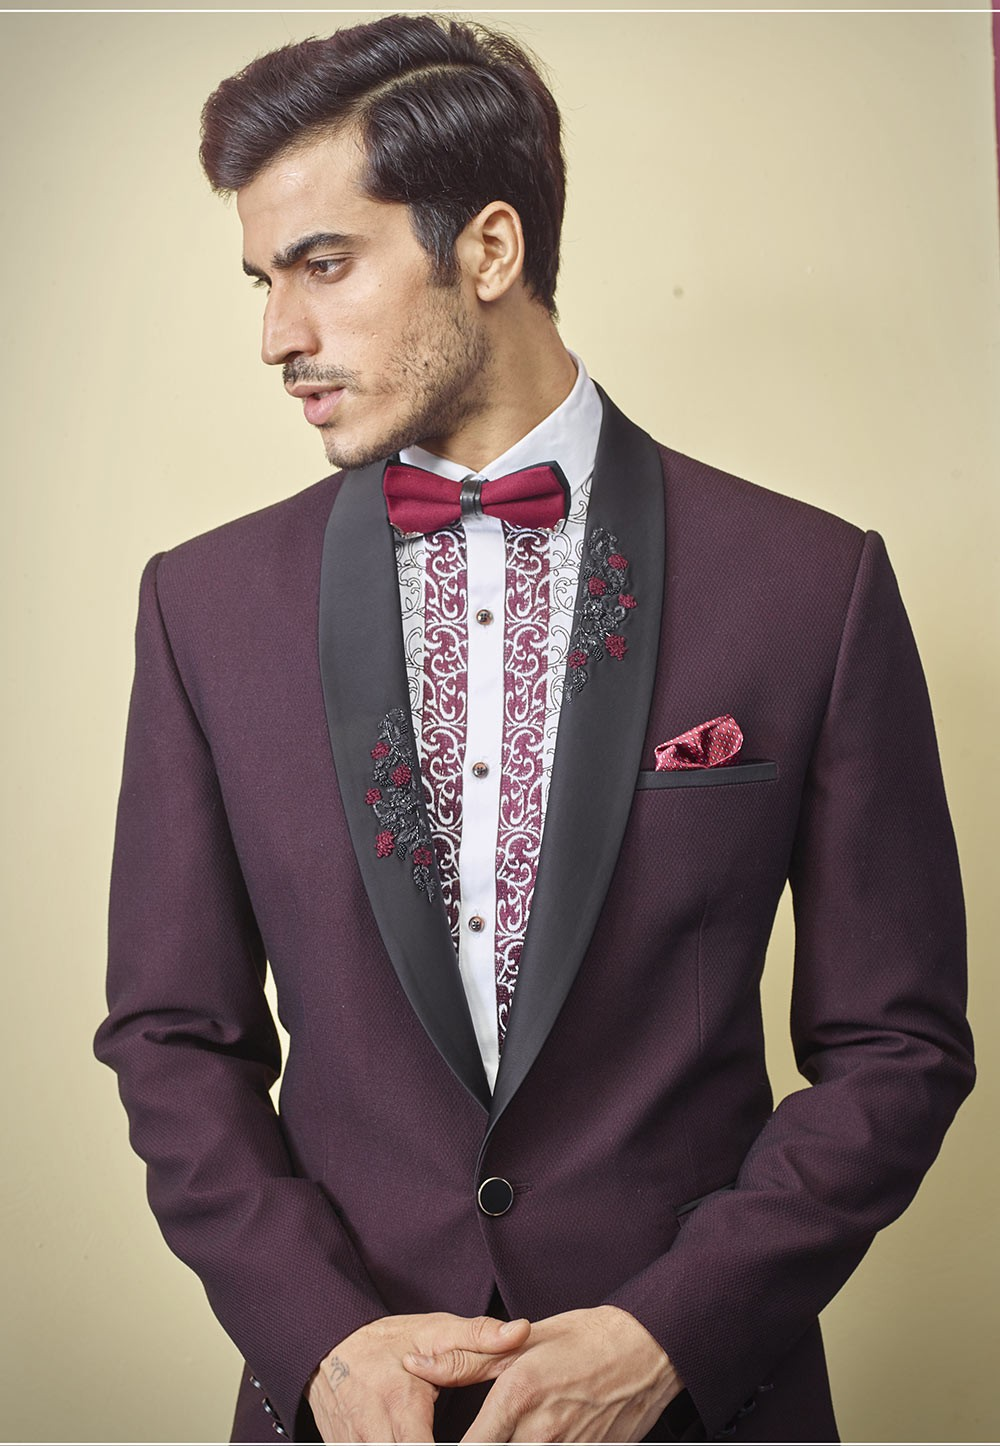 Wine Colour Indian Wedding Suit.